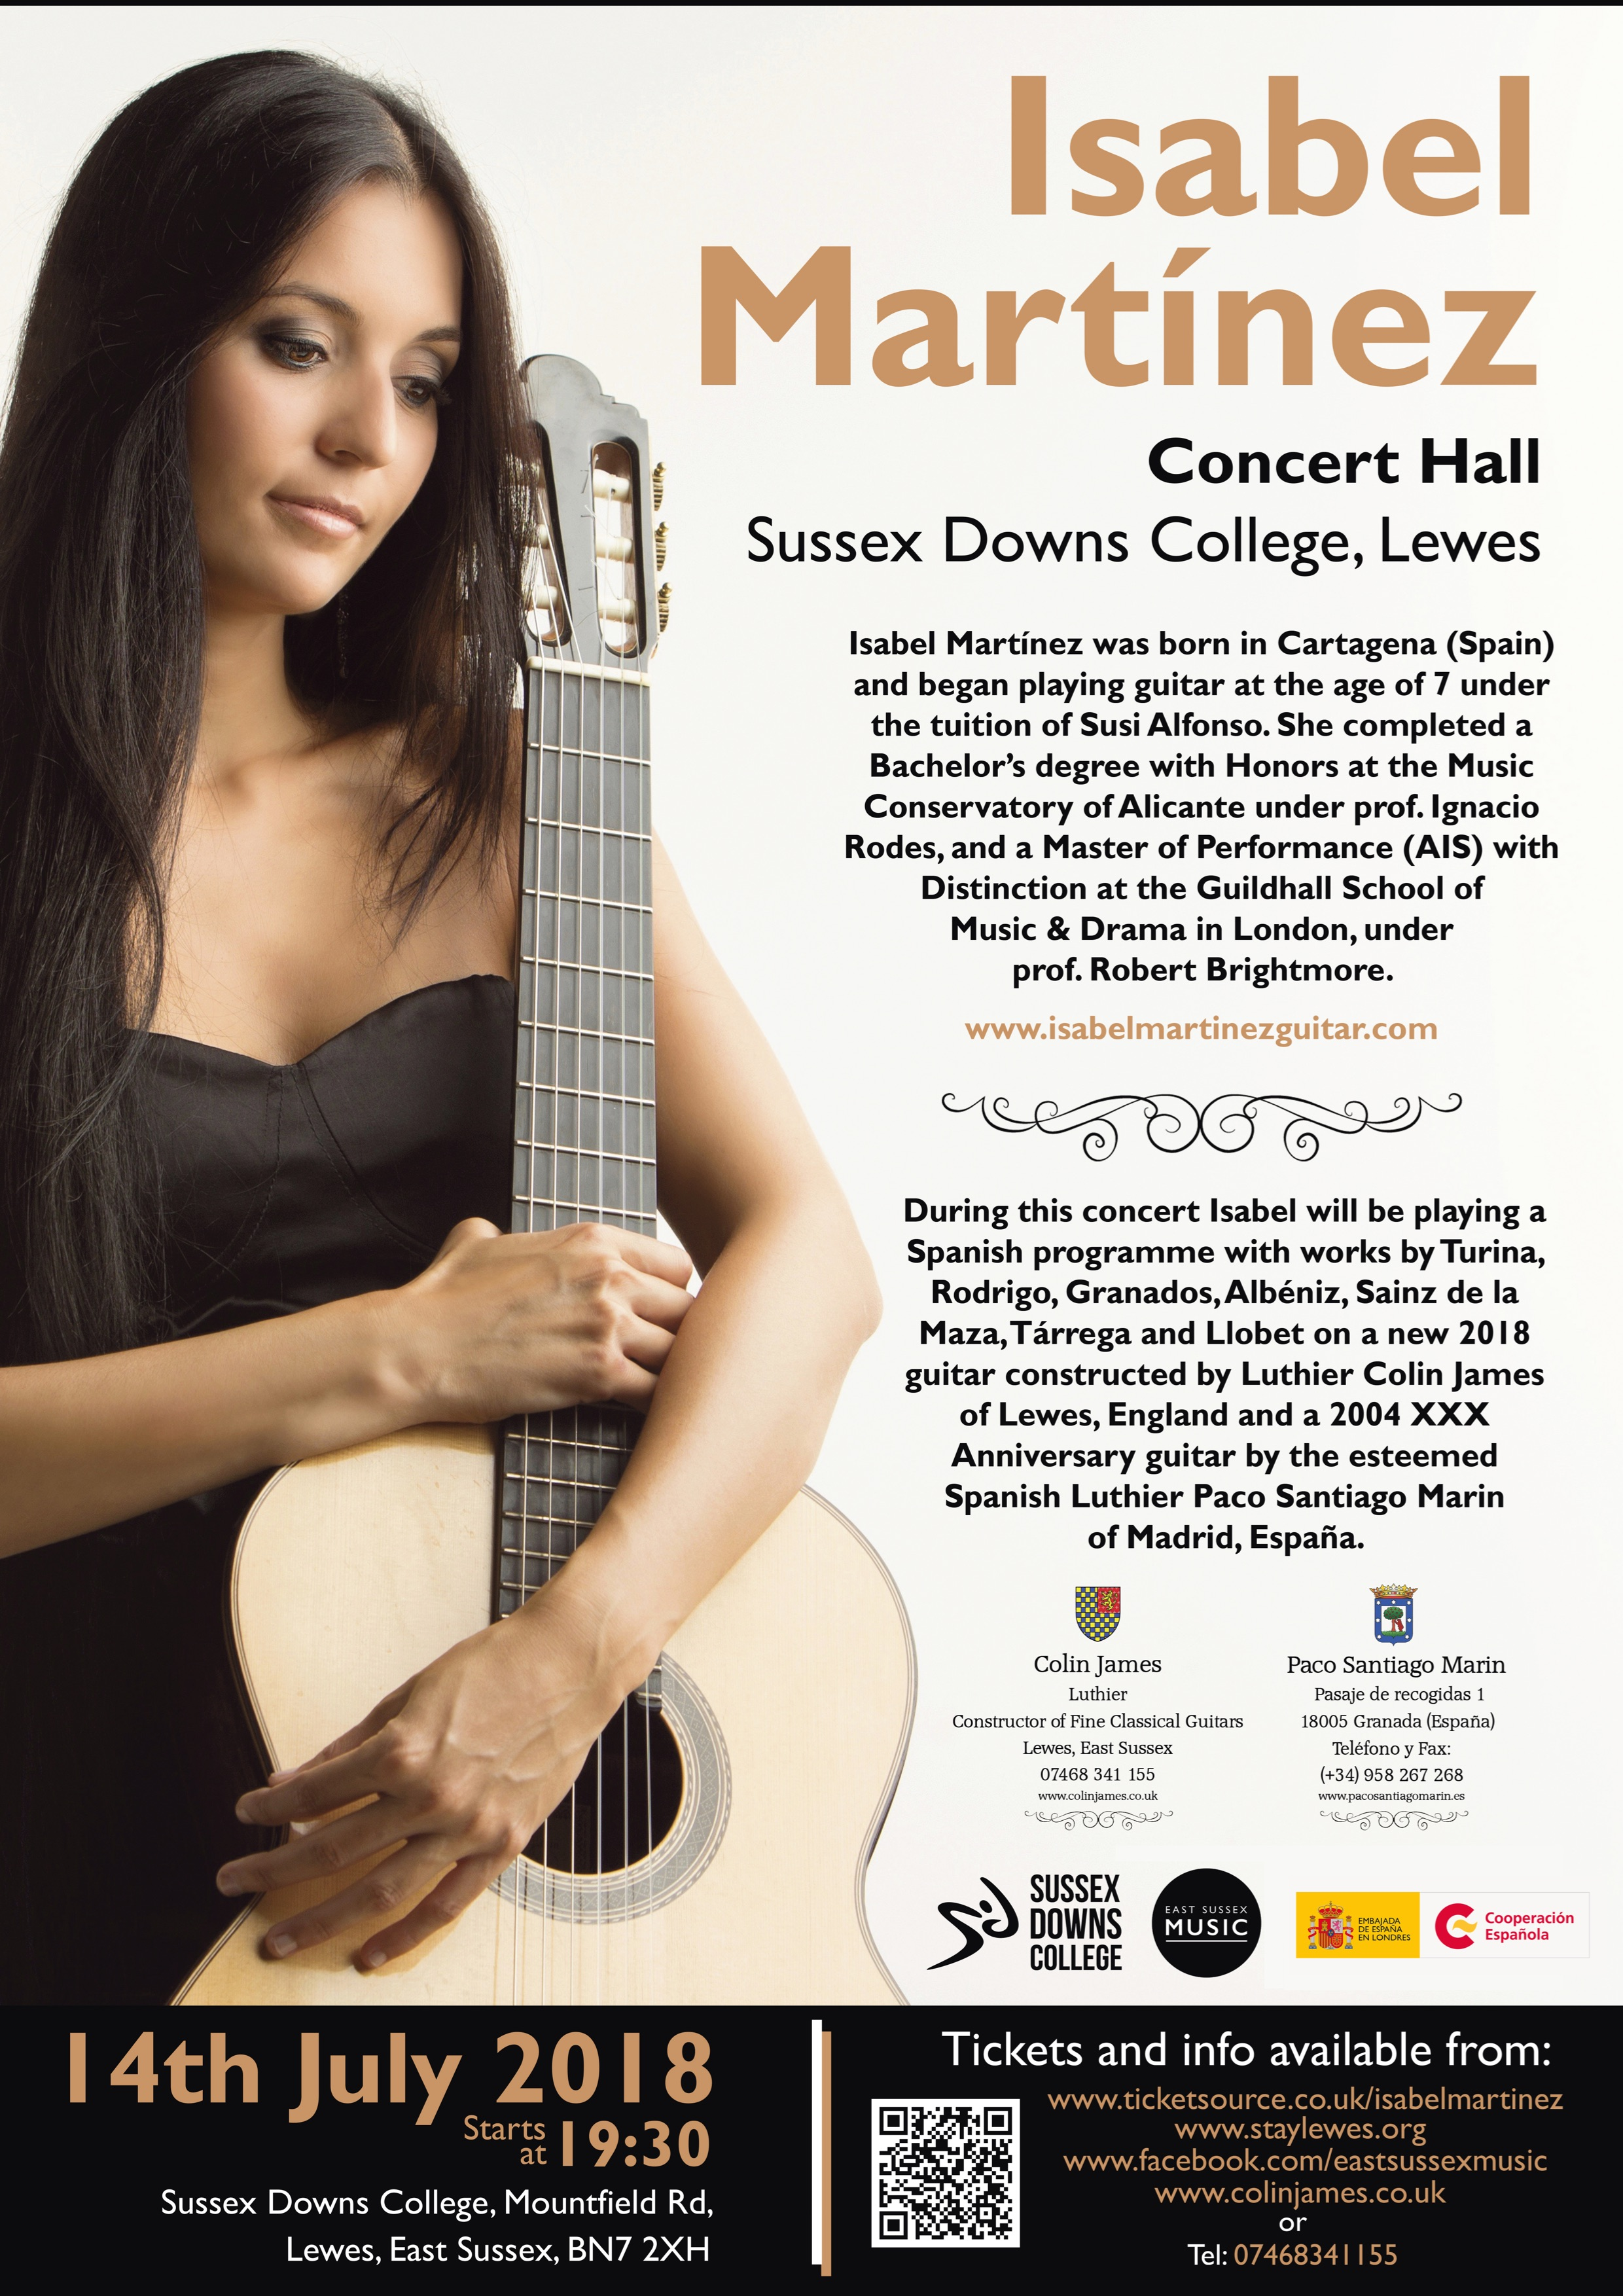 Isabel Martinez guitar concert Sussex Downs College Lewes